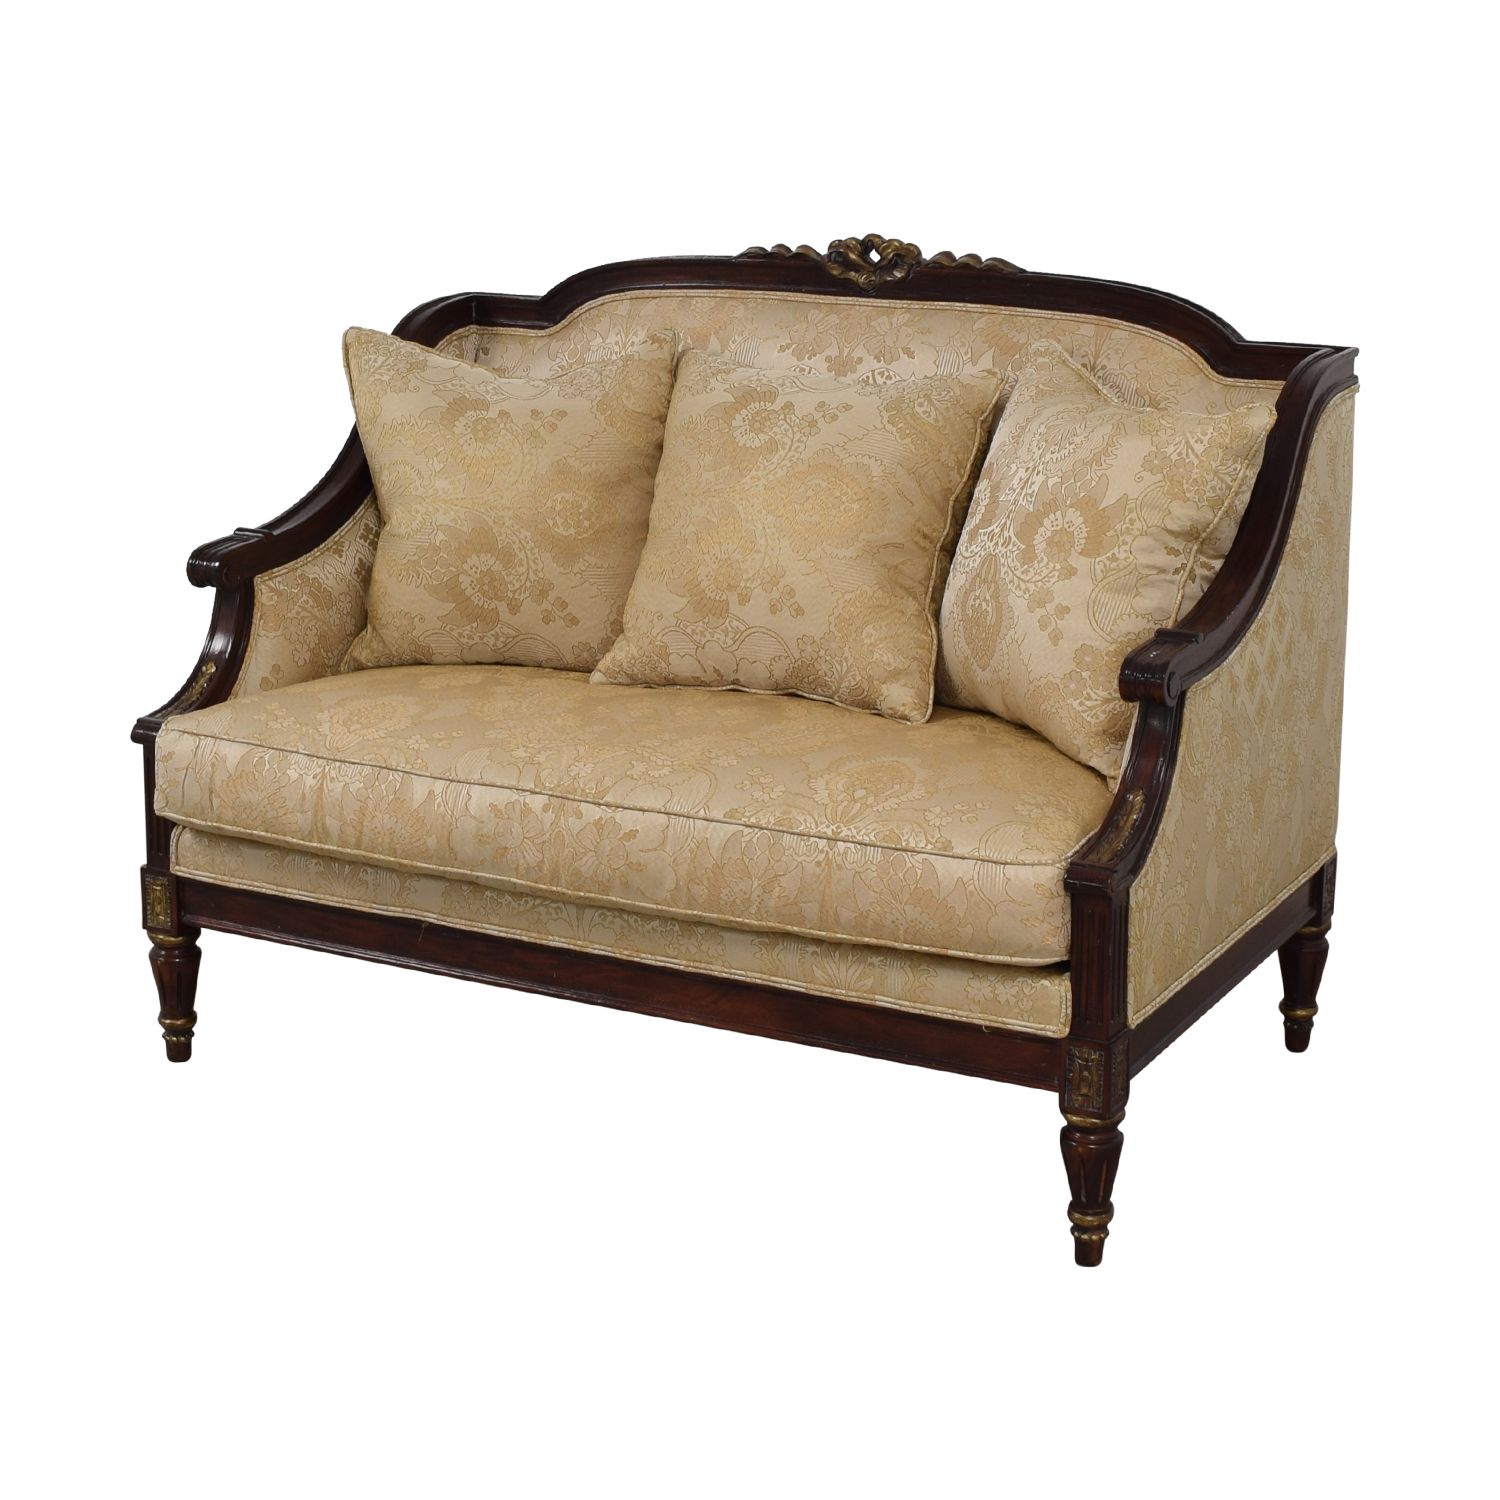 buy Jeffco Furniture Jeffco Furniture Beige Jacquard and Wood Love Seat online